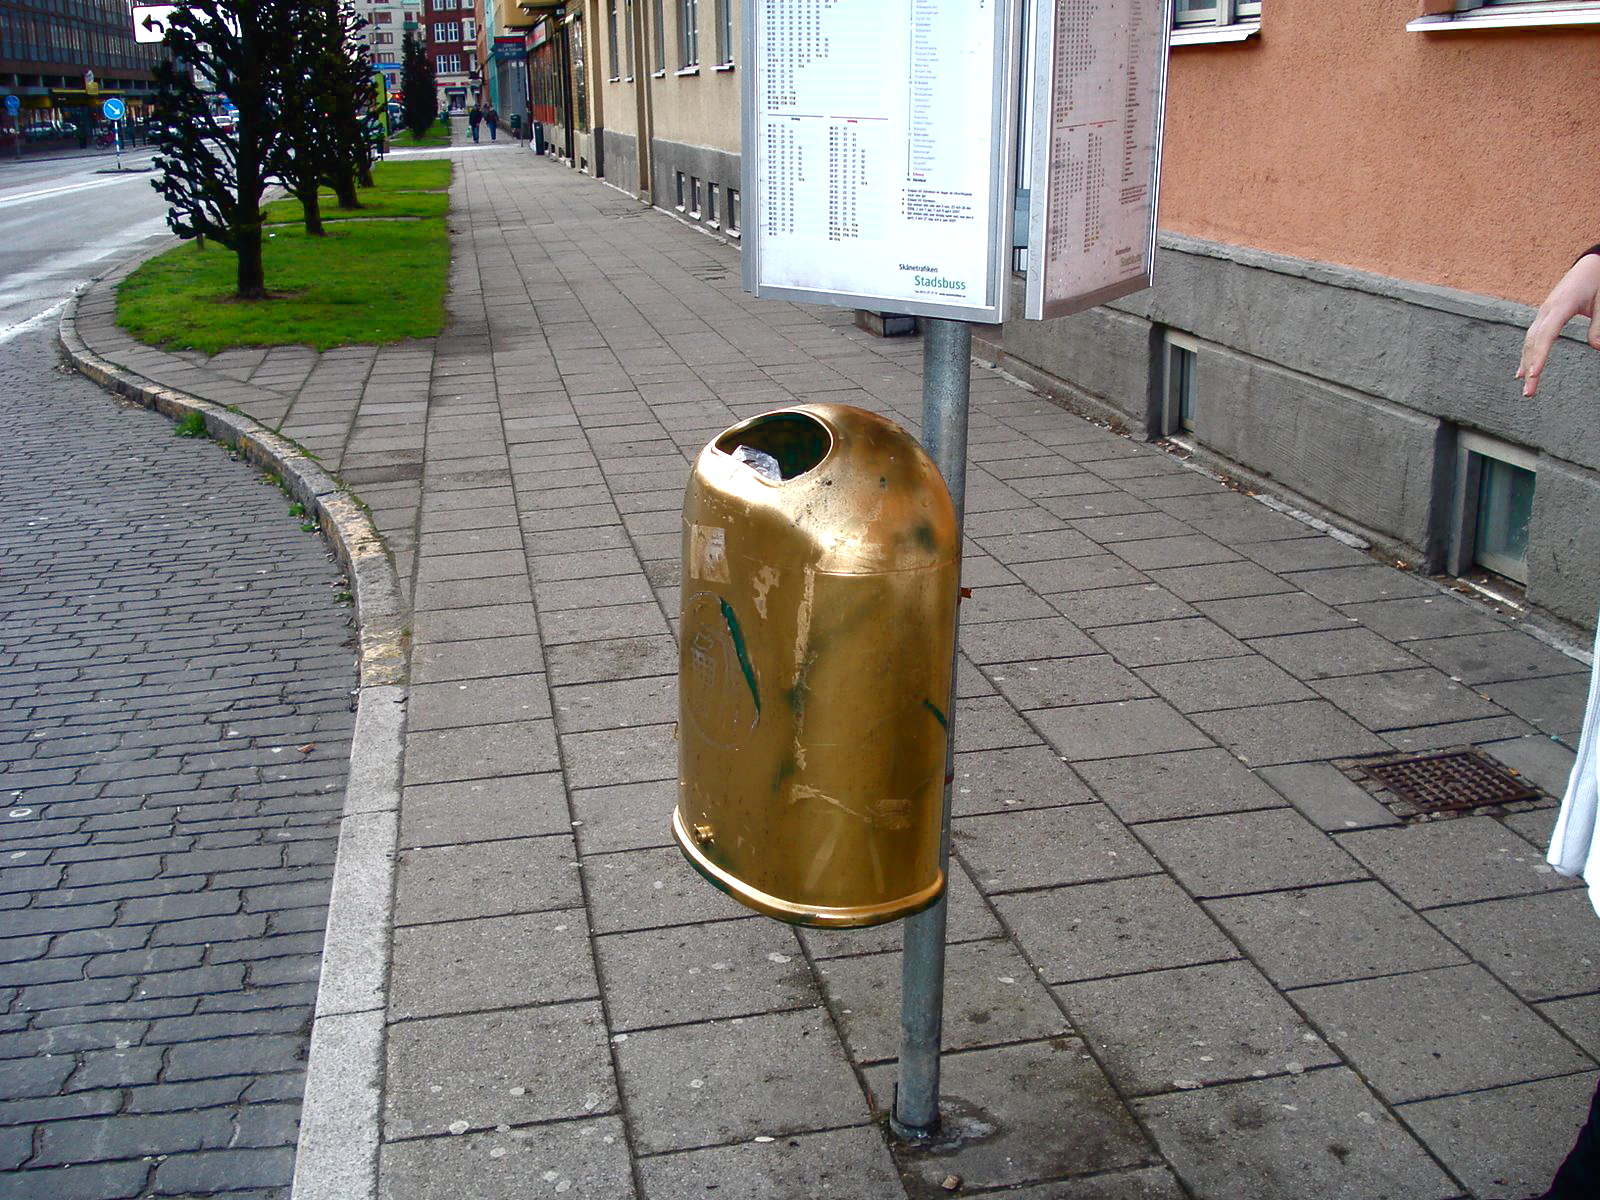 Decorative dumpster at bus stop, Malmö